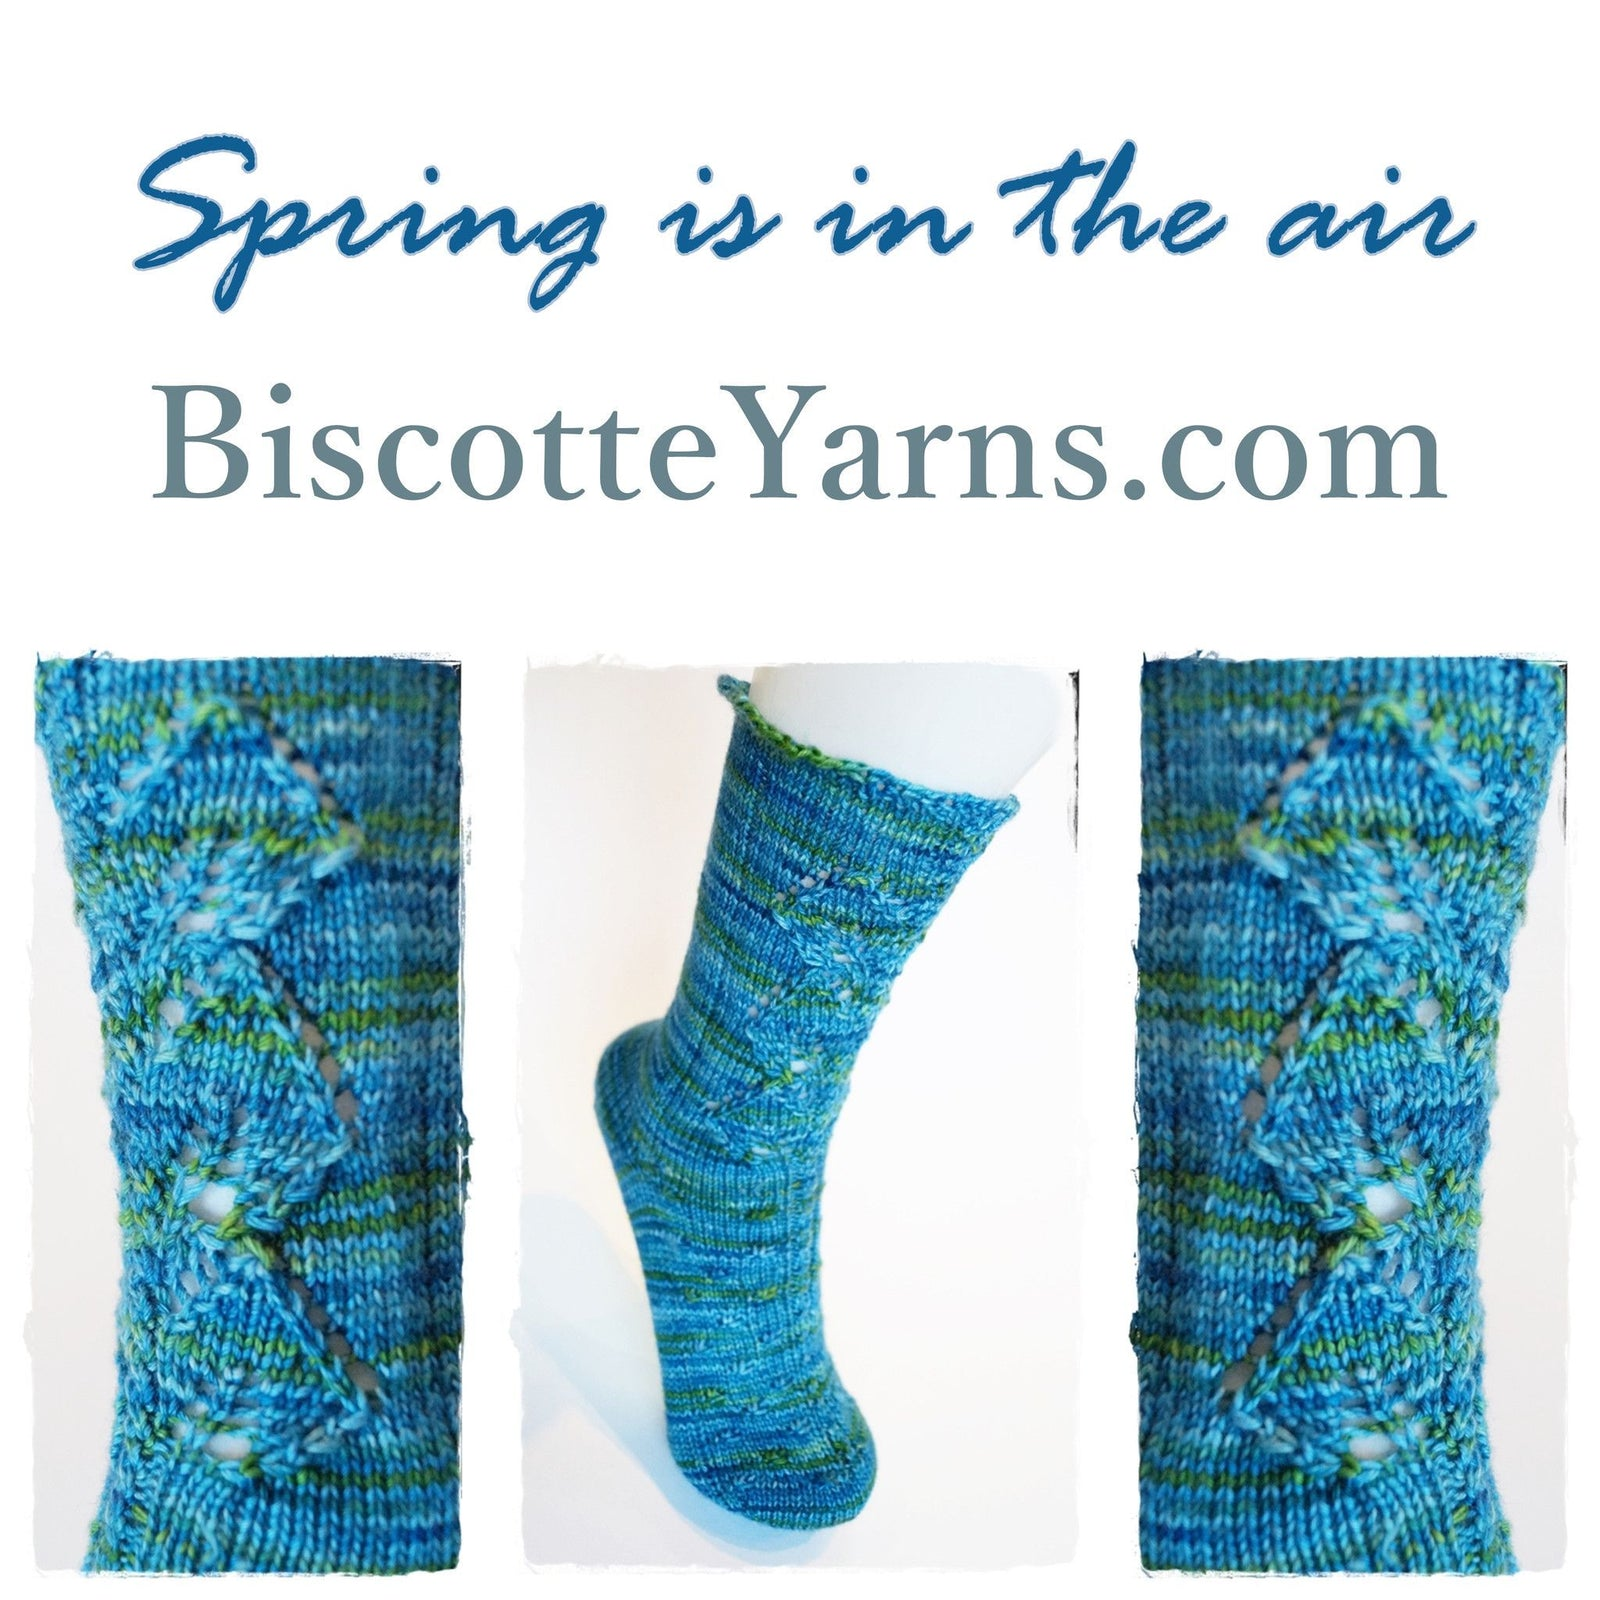 Free sock pattern - Spring is in the air - Biscotte yarns